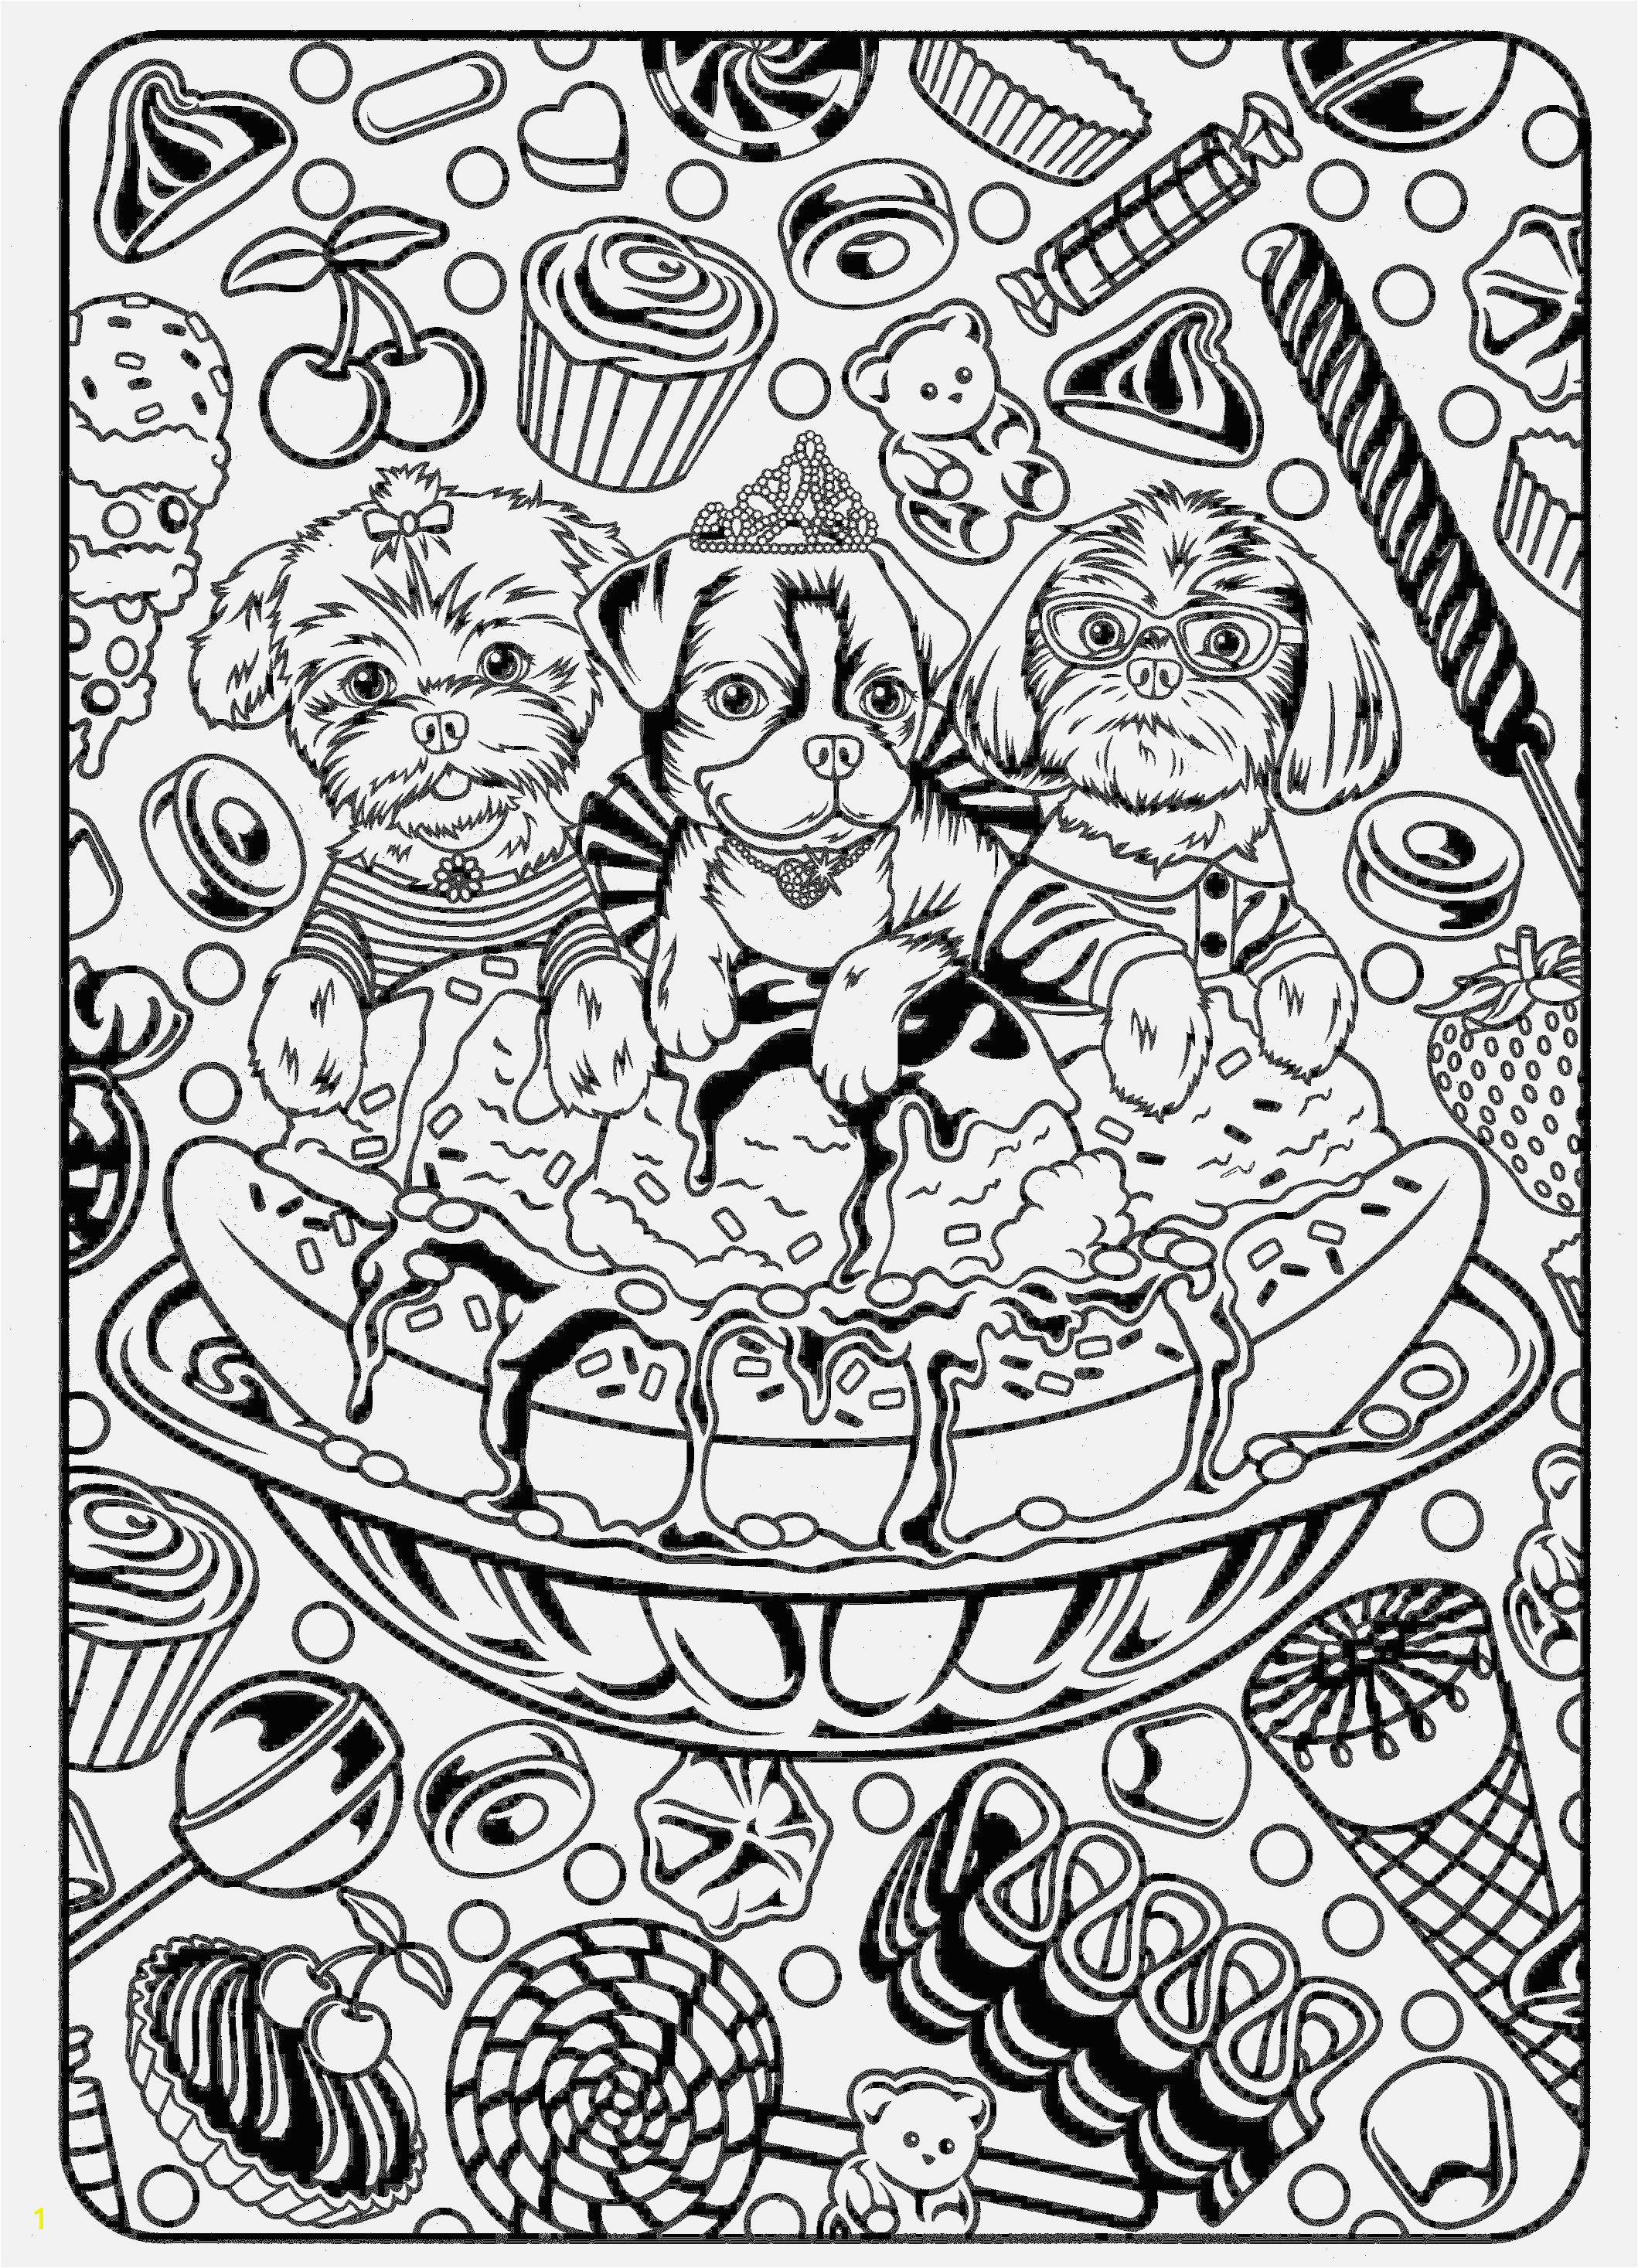 Stress Relief Coloring Books Stress Relief Coloring Books Inspirational S Stress Relief Stress Relief Coloring